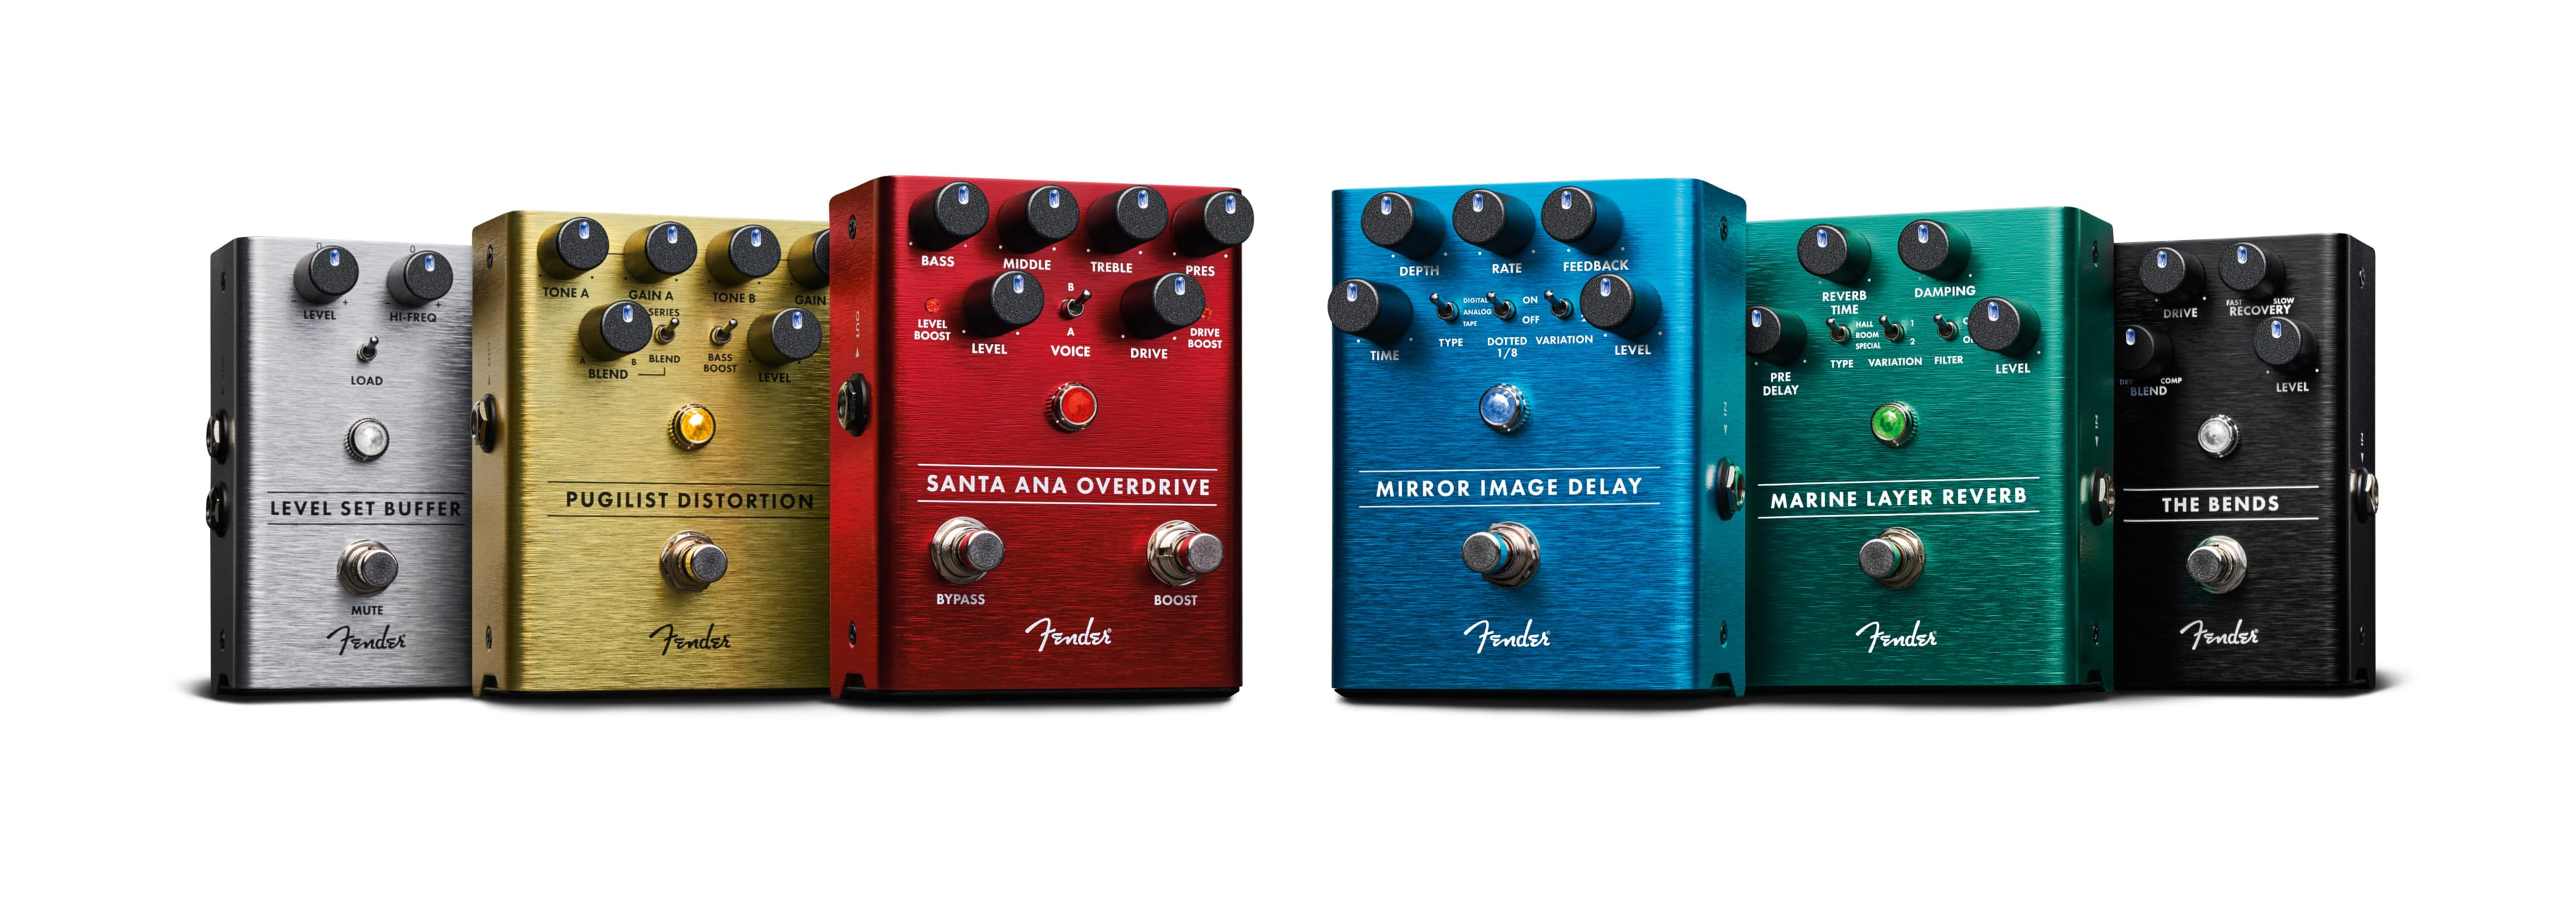 fender effects pedals review american songwriter. Black Bedroom Furniture Sets. Home Design Ideas